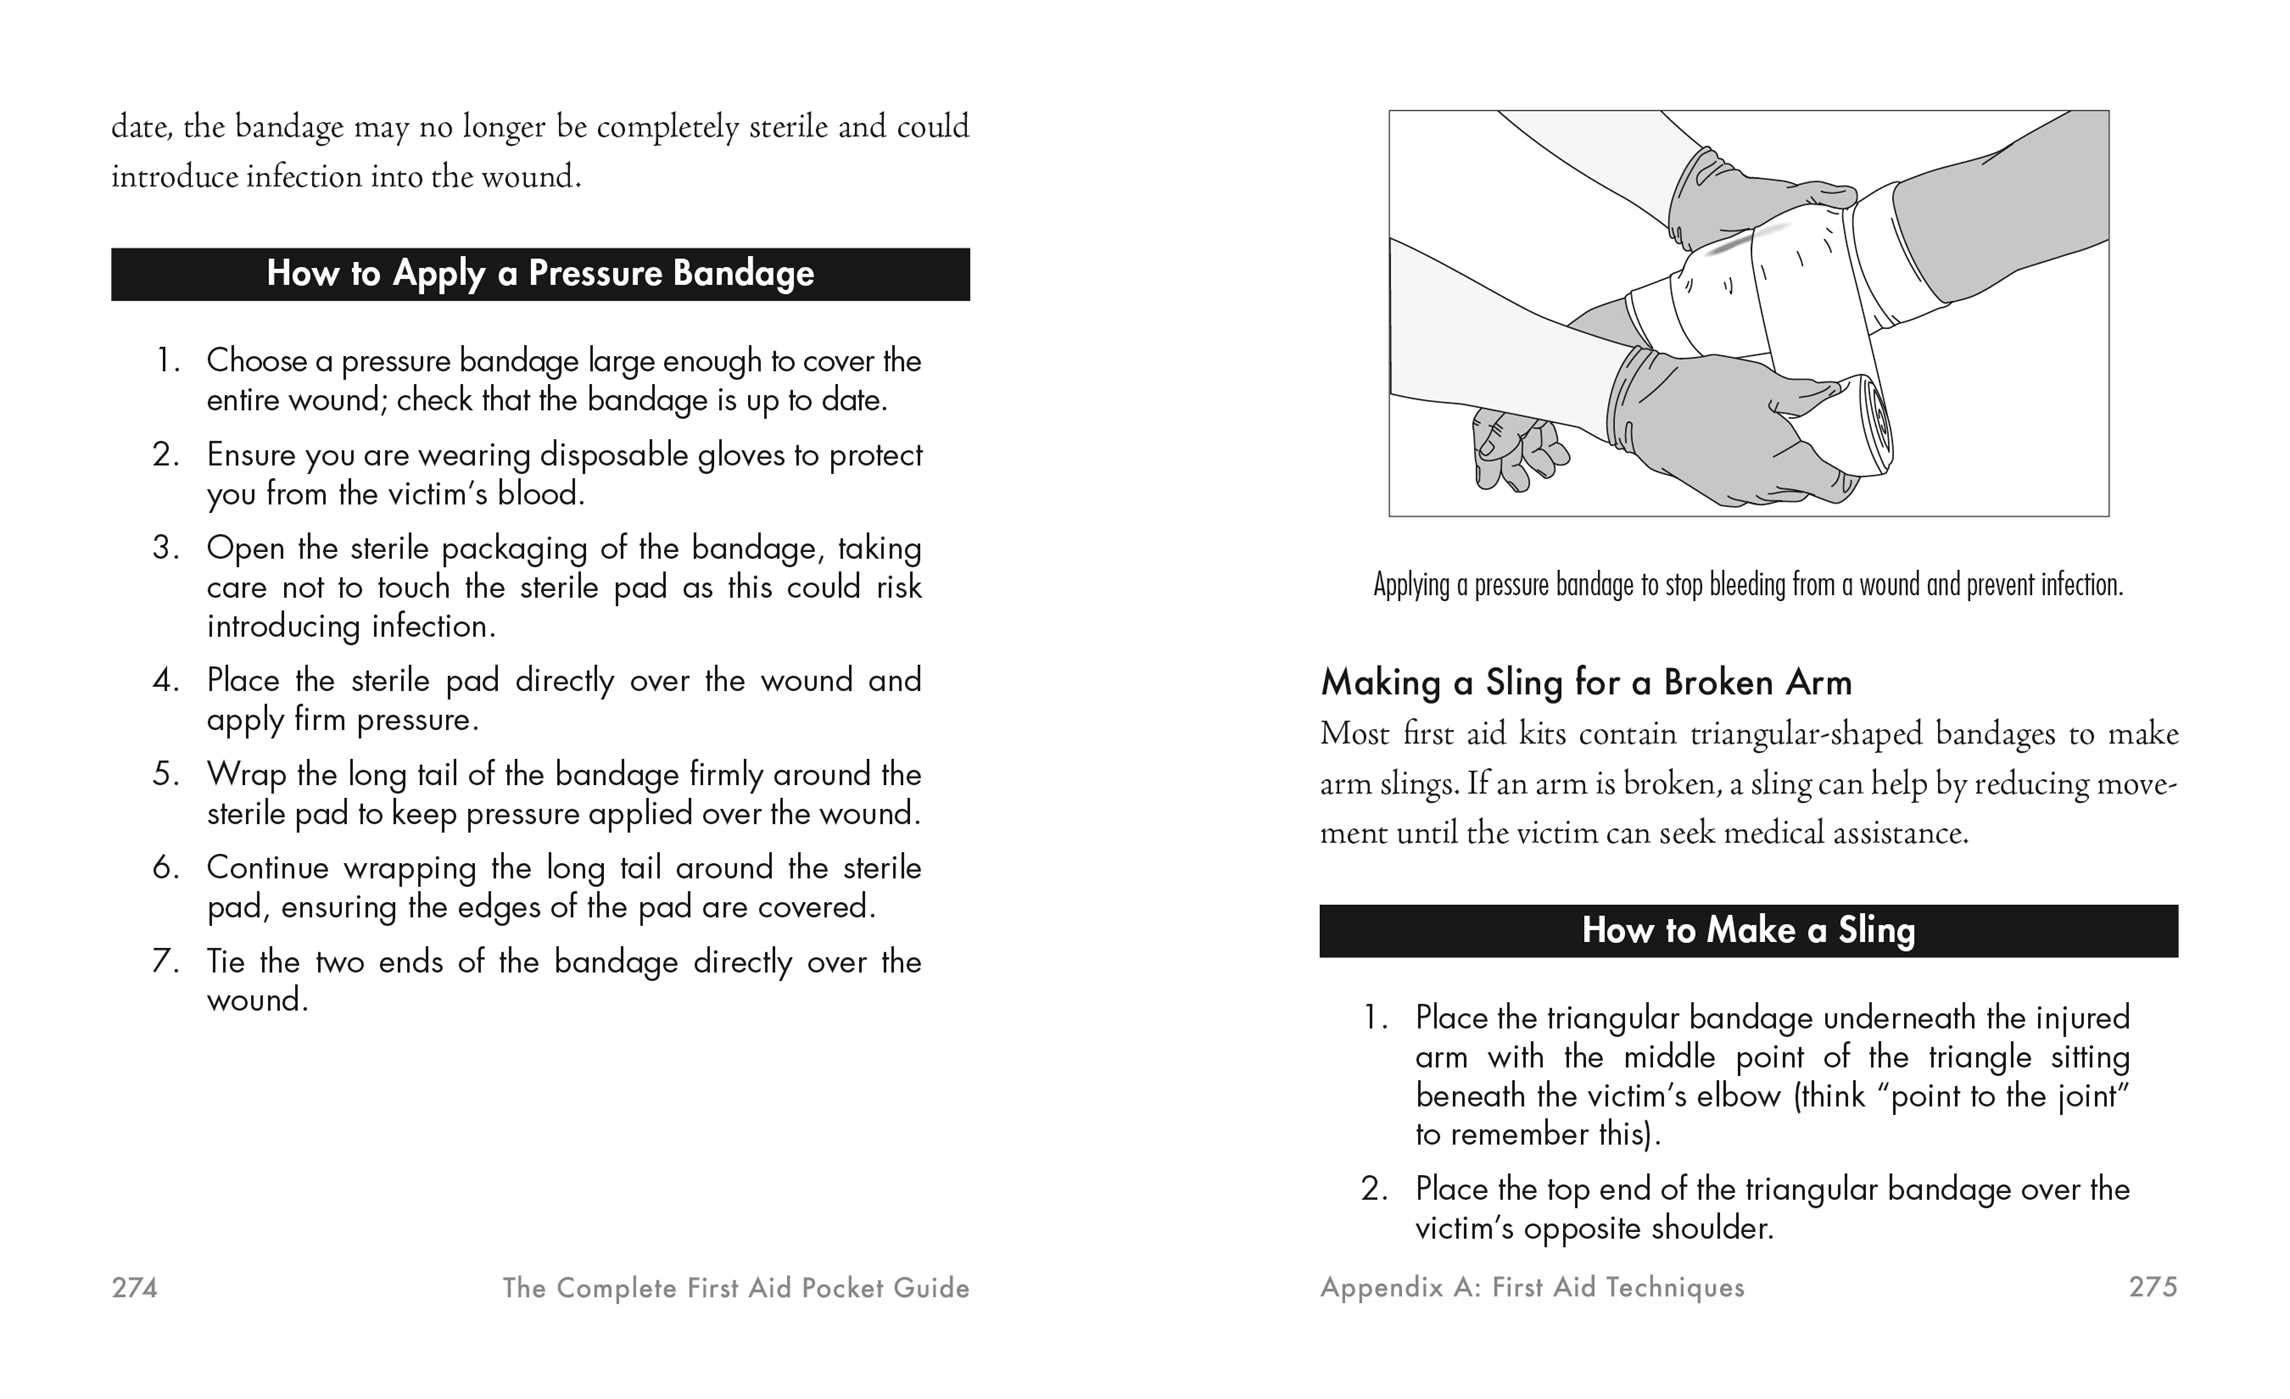 Buy The Complete First Aid Pocket Guide: Step-by-Step